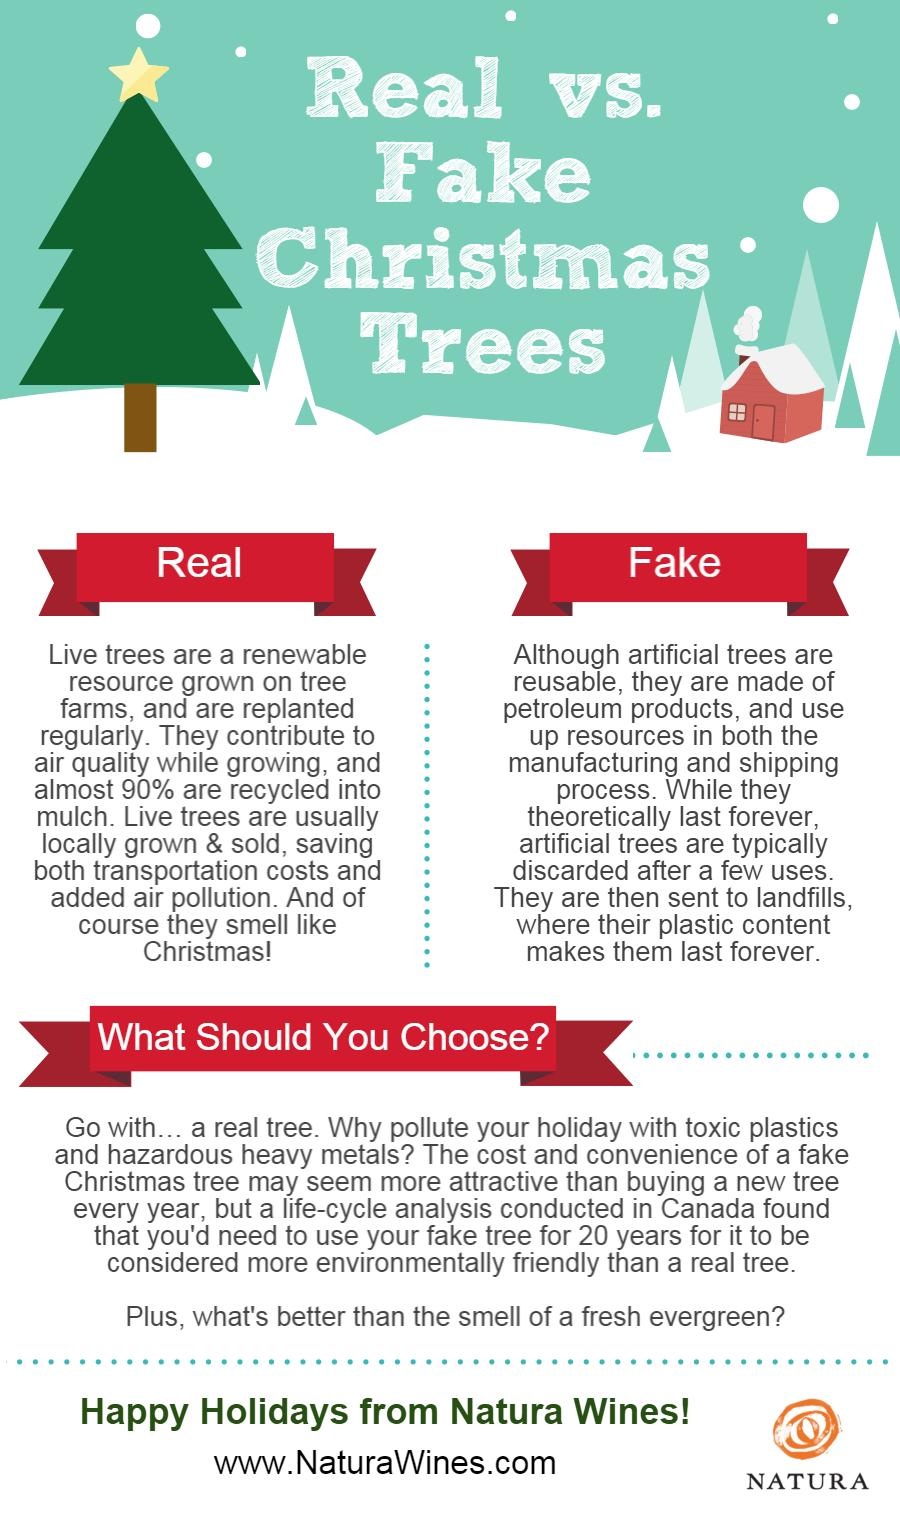 real vs fake christmas trees infographic - What Christmas Tree Smells The Best